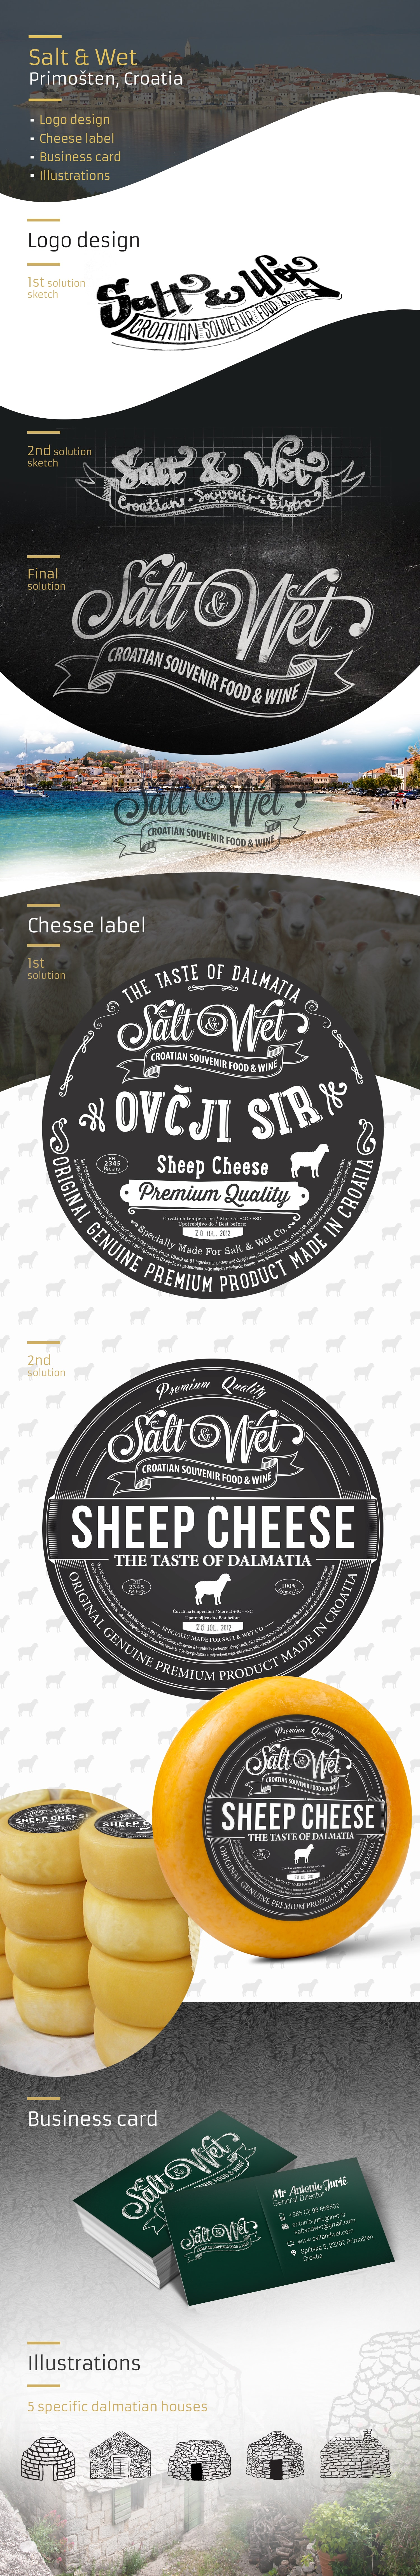 saltandwet chesse label and logo